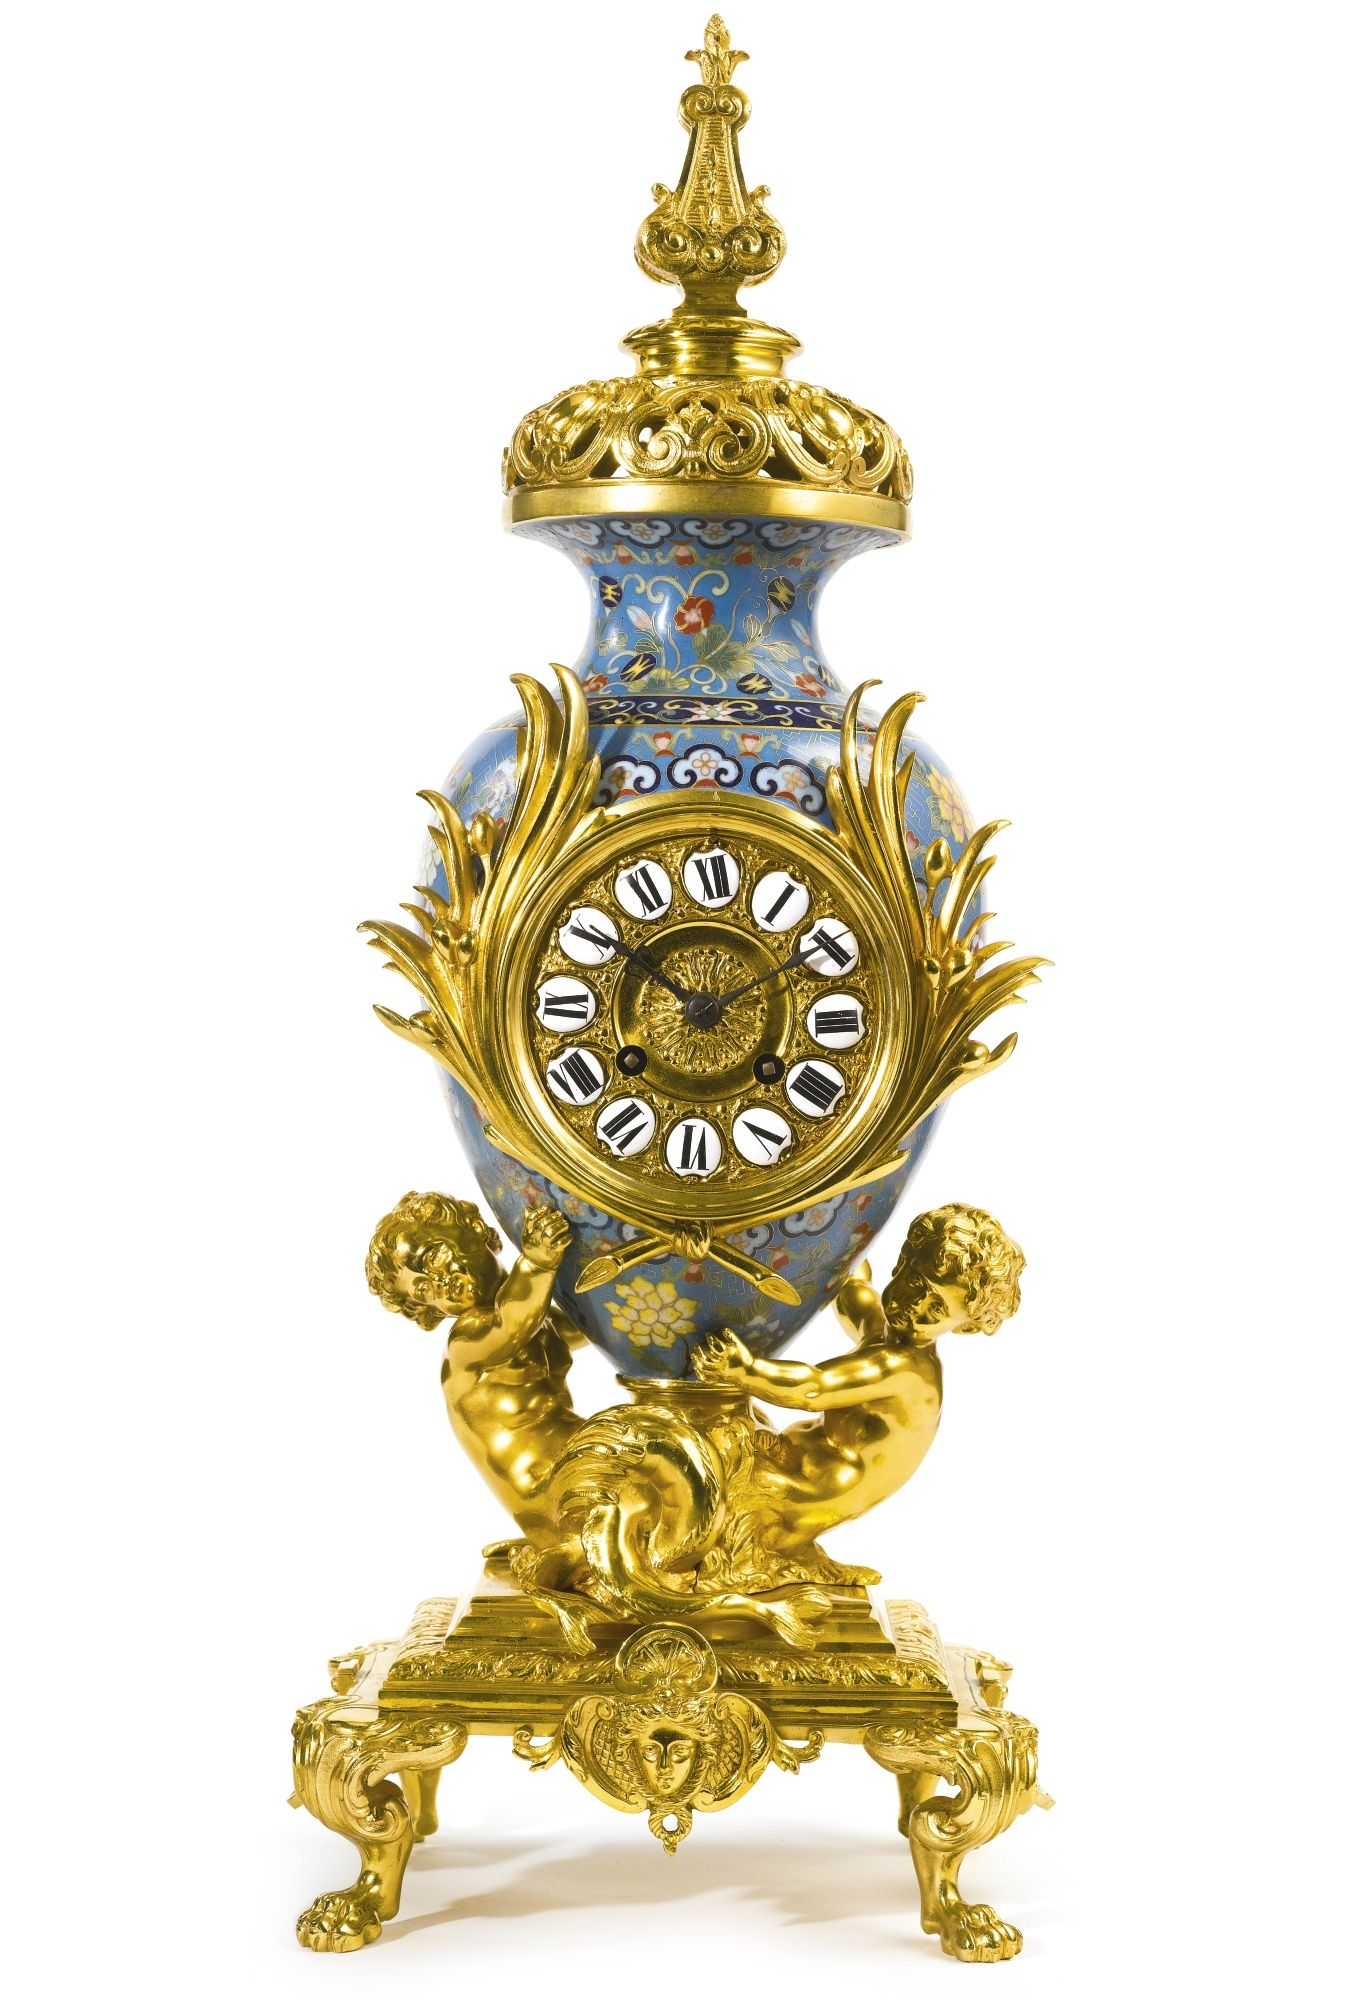 A GILT BRONZE AND CLOISONNÉ ENAMEL MANTEL CLOCK FRANCE, LATE 19TH/EARLY 20TH CENTURY cast with a pair of young tritons holding aloft a Chinese-style vase centered by a clock dial, the twin train movement with the JAPY seal and numbered 2002